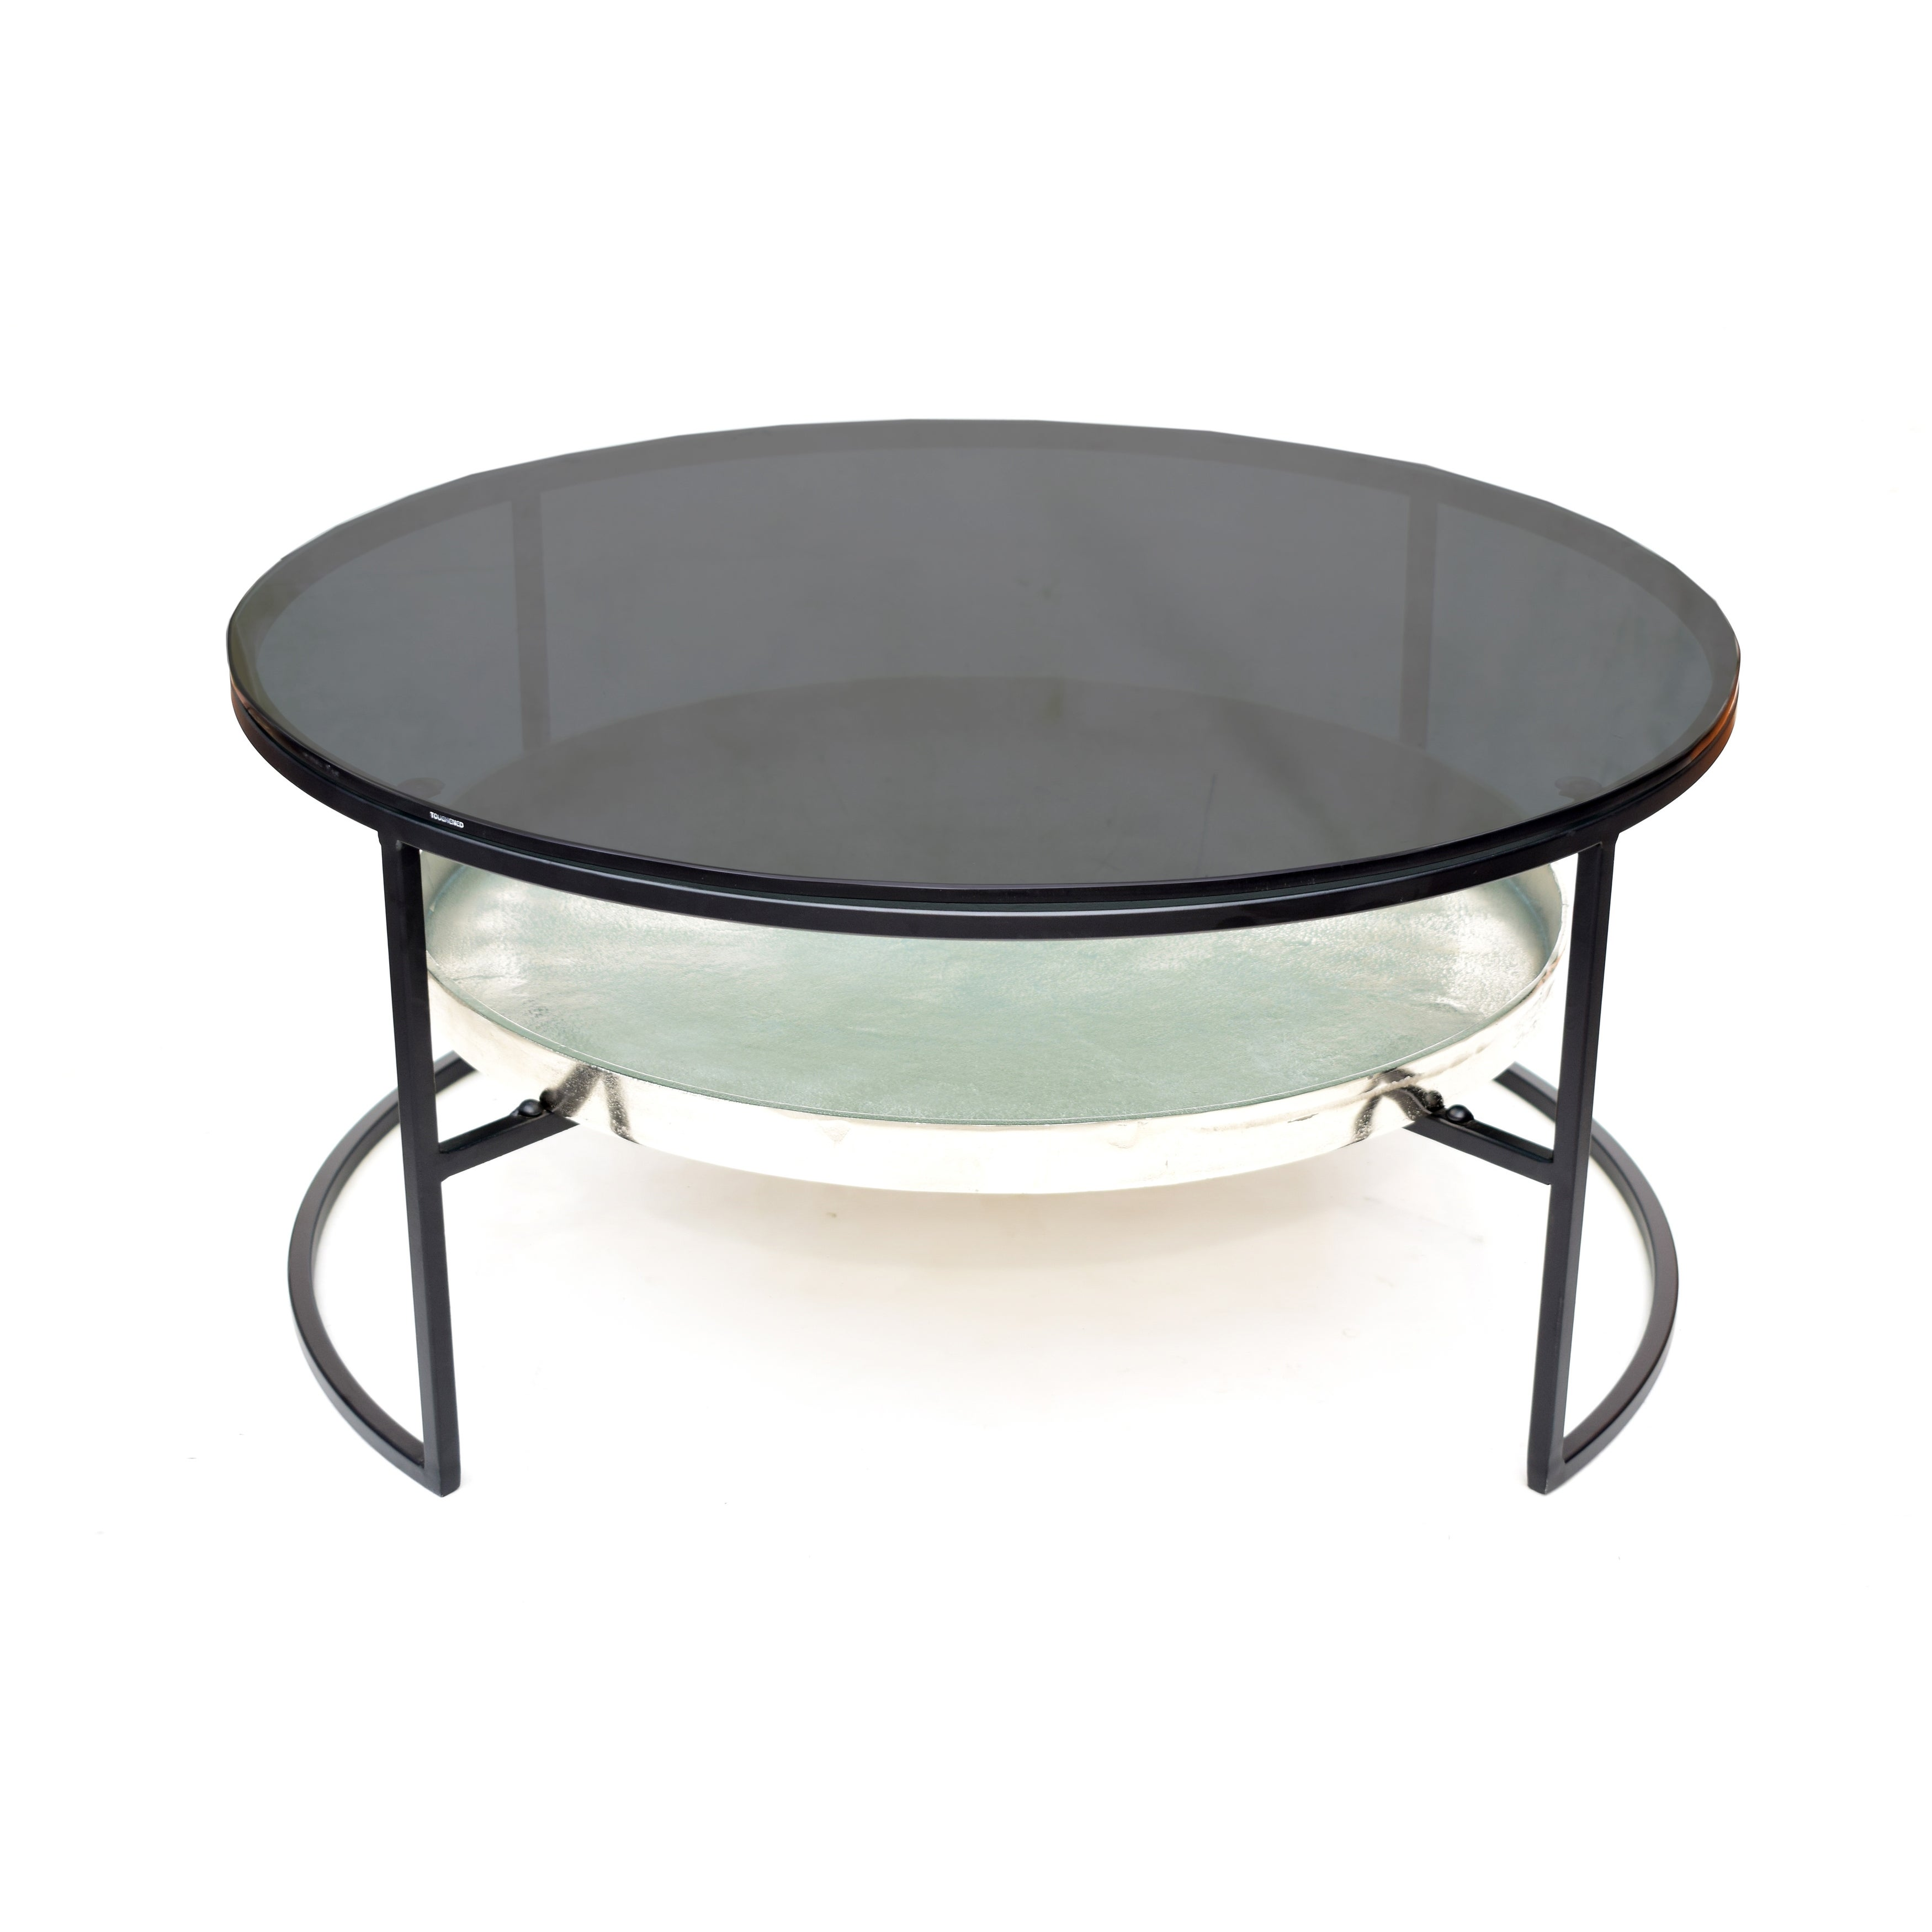 Smart Black Nickle Coffee Table With Smoke Glass On Sale Overstock 32193816